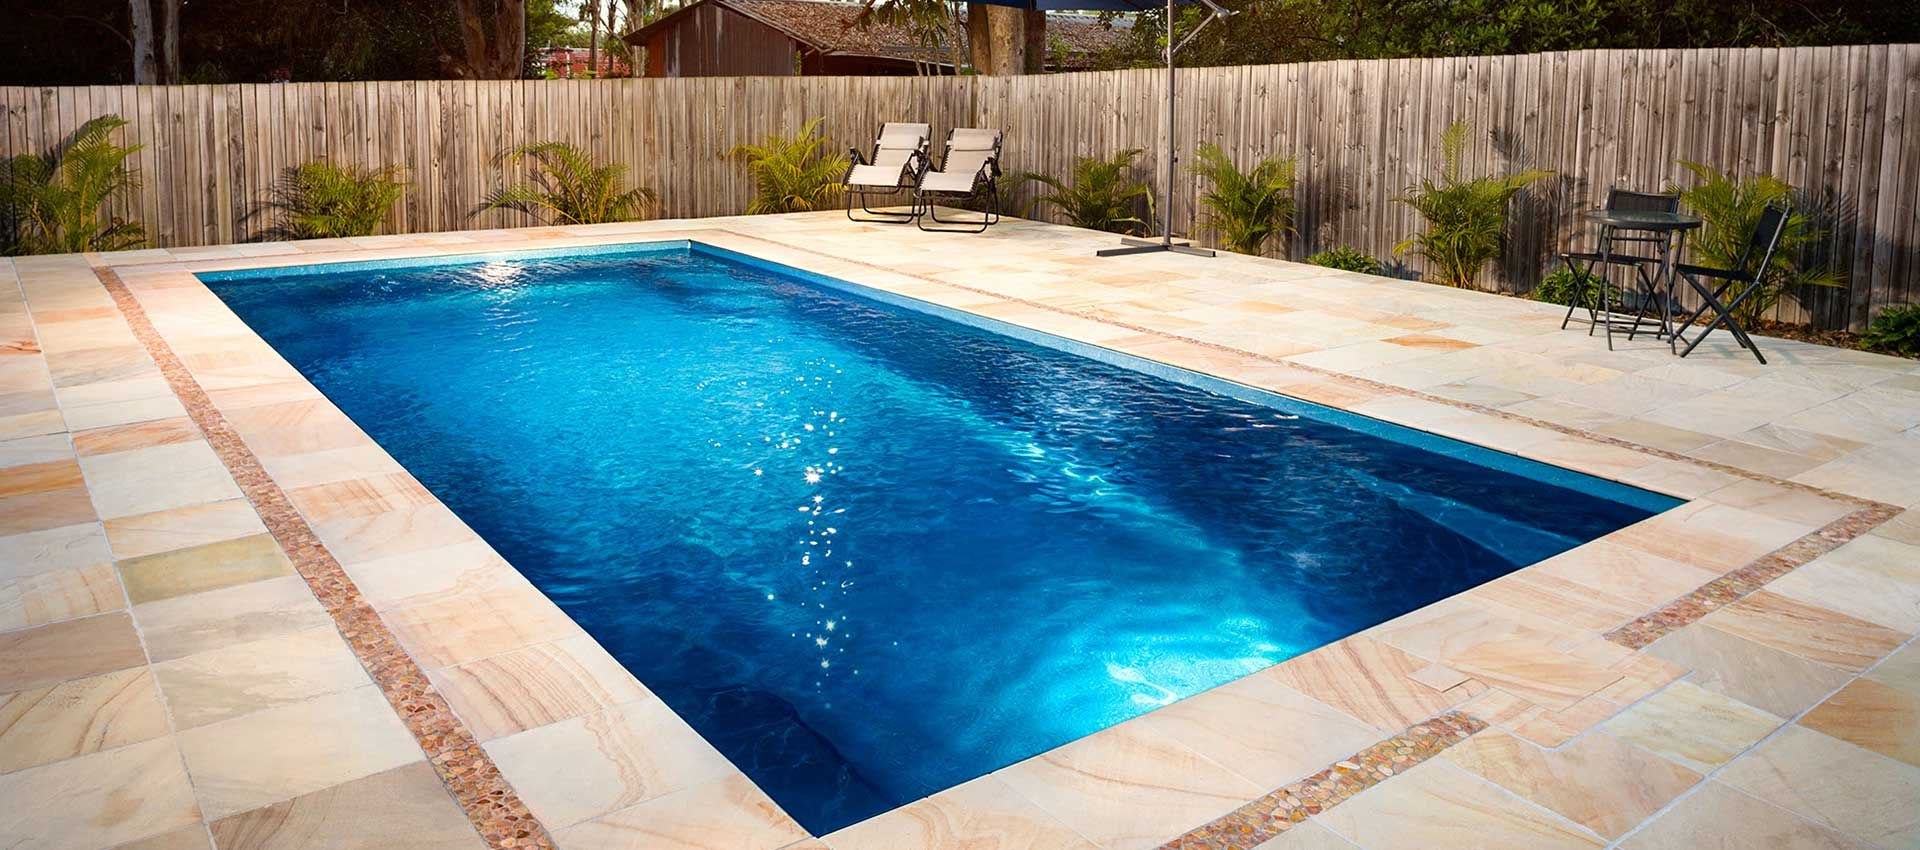 Fibreglass Pool Australia Federation Outdoor Pool Freedom Pools And Spas Pool